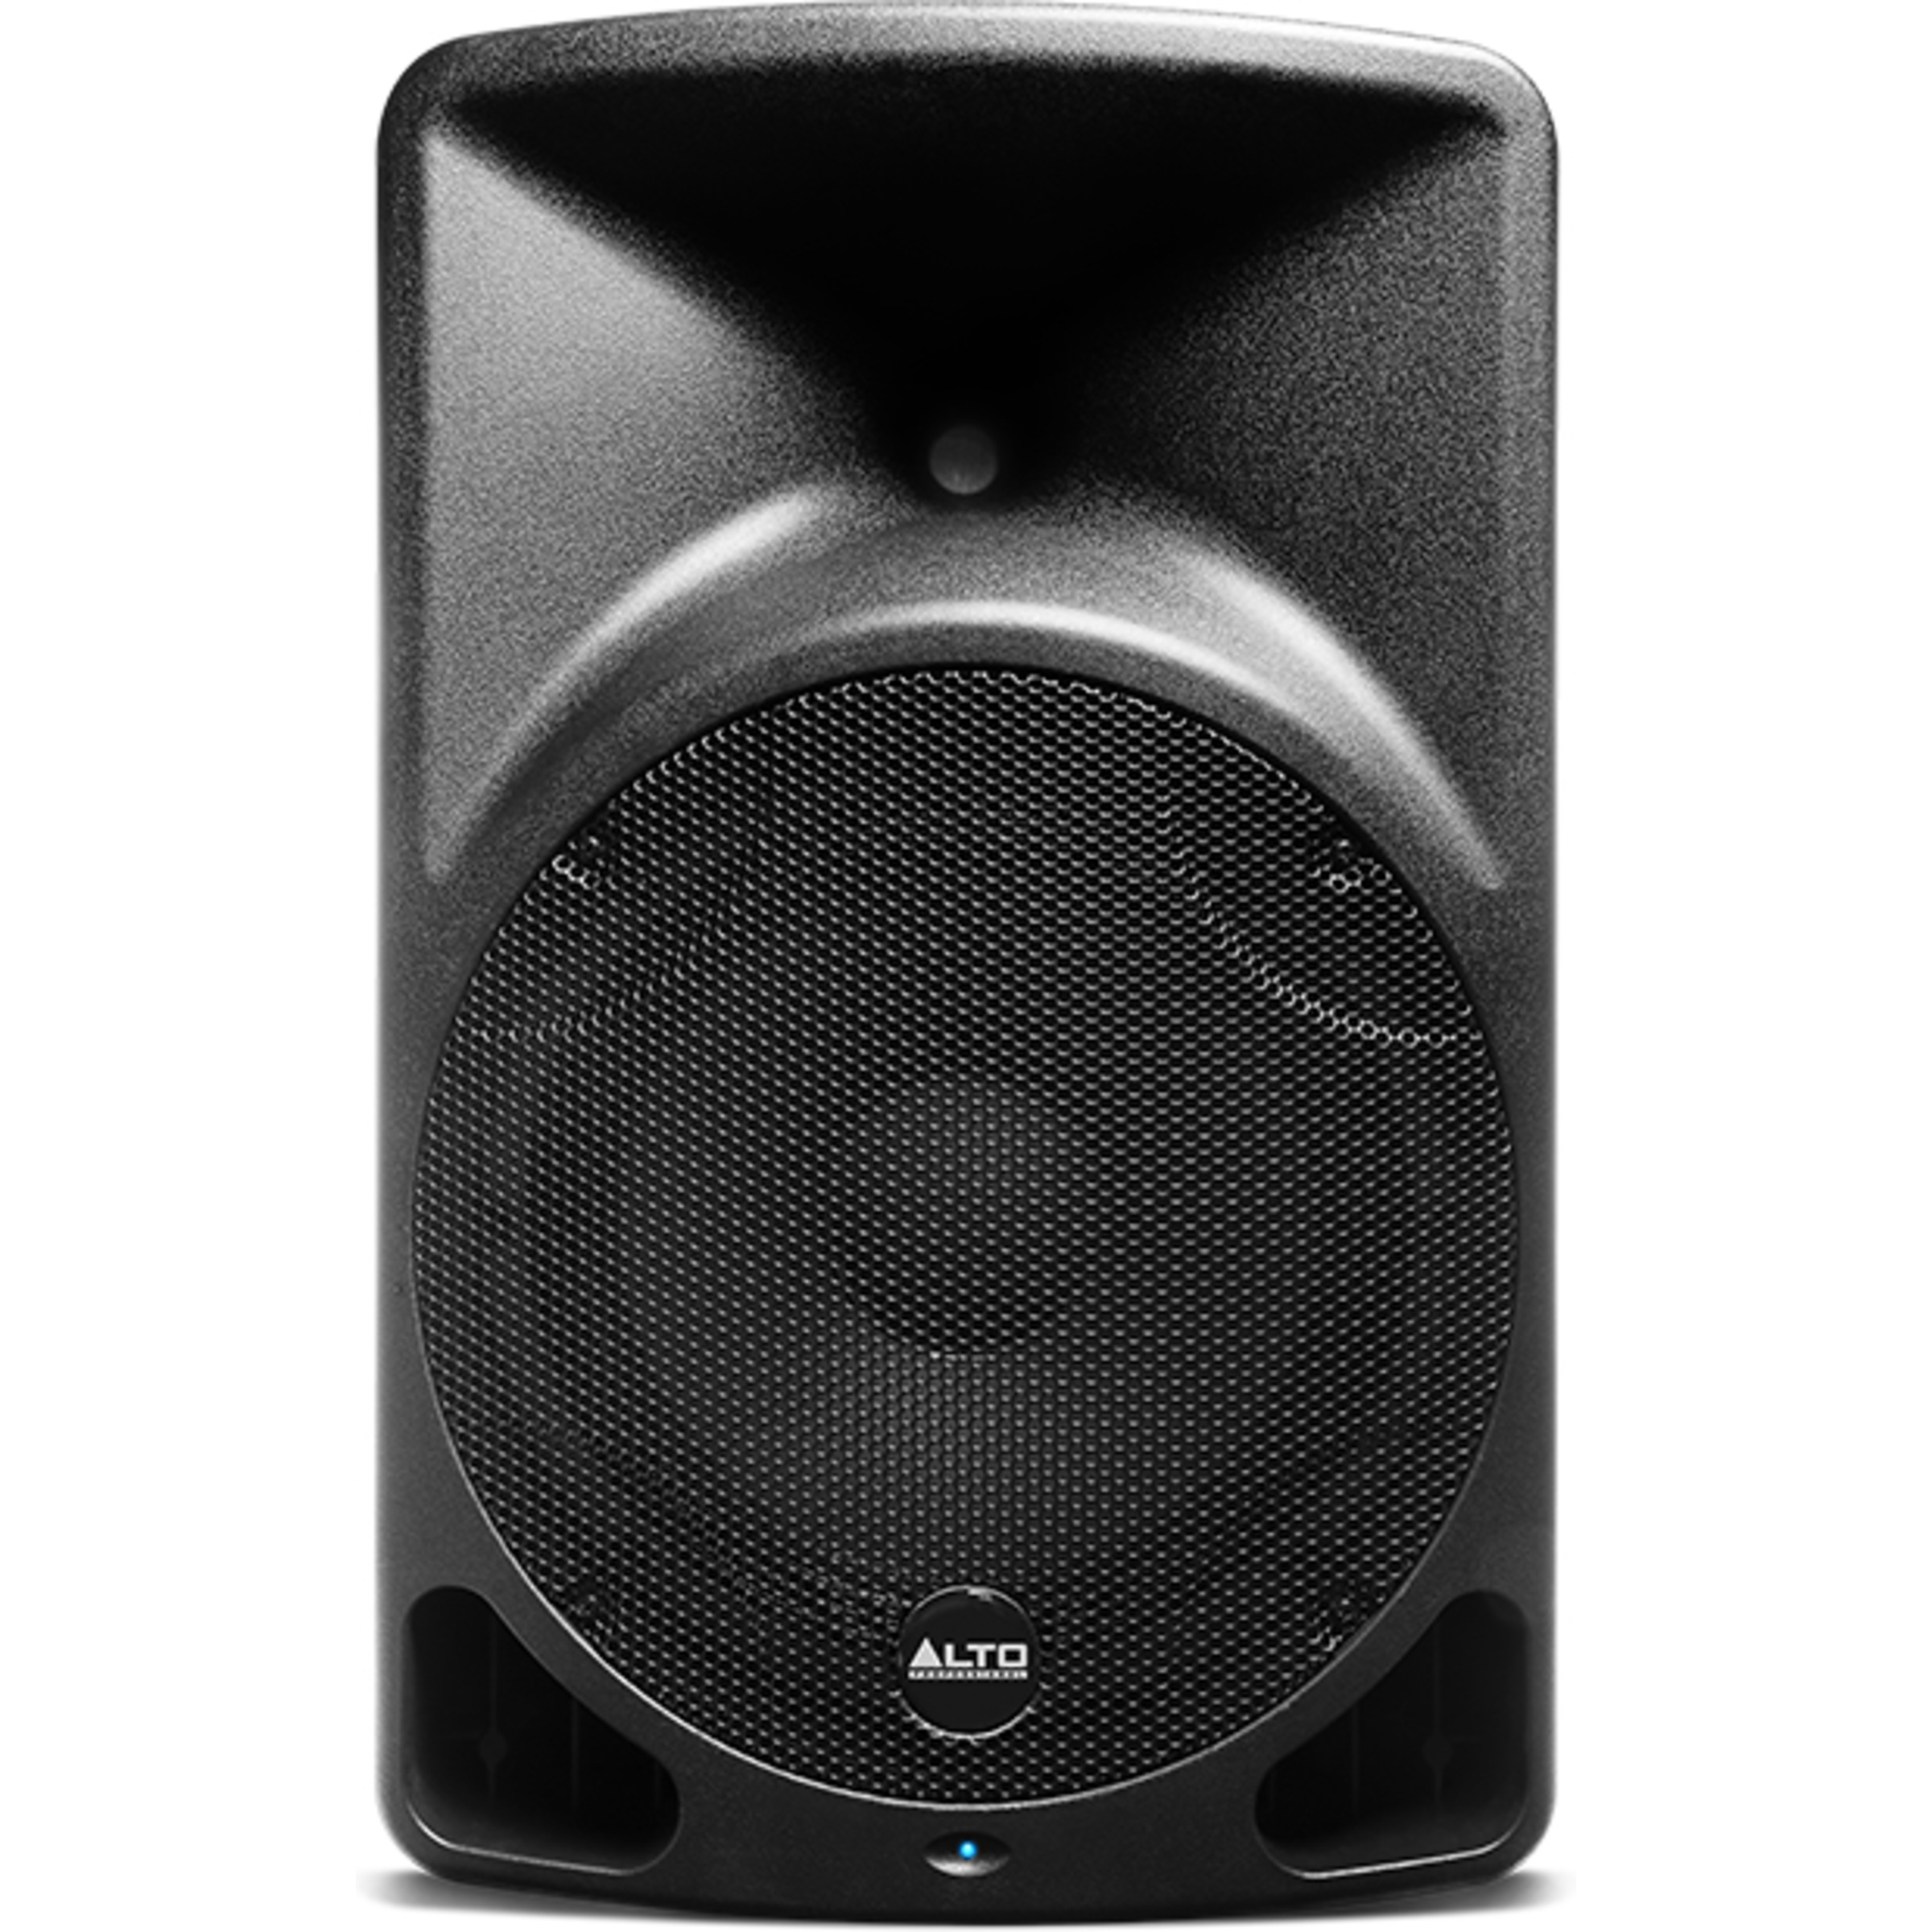 alto tx12 12 powered pa speaker giggear. Black Bedroom Furniture Sets. Home Design Ideas